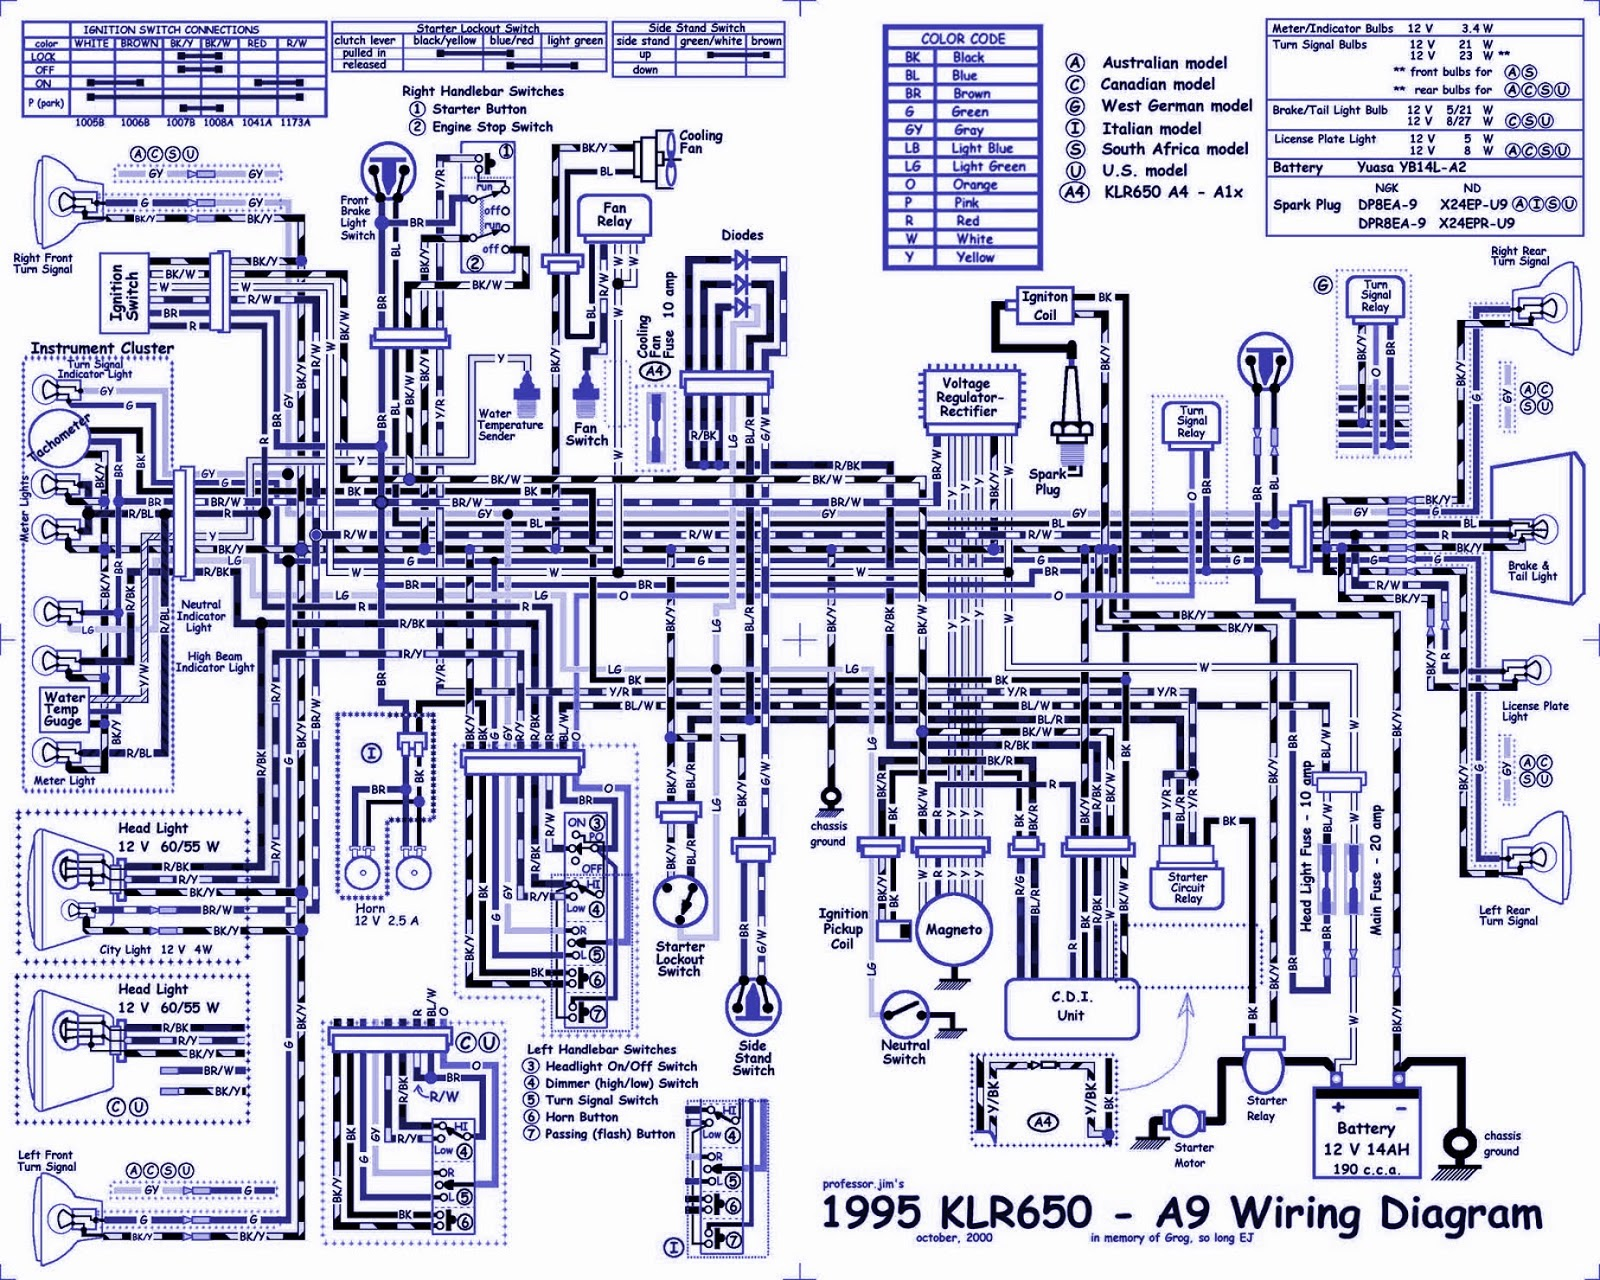 Chevrolet+Monte+Carlo+1974+Electrical+Wiring+Diagram old fuse box diagram readingrat net 1974 Chevy Truck Wiring Diagram at panicattacktreatment.co